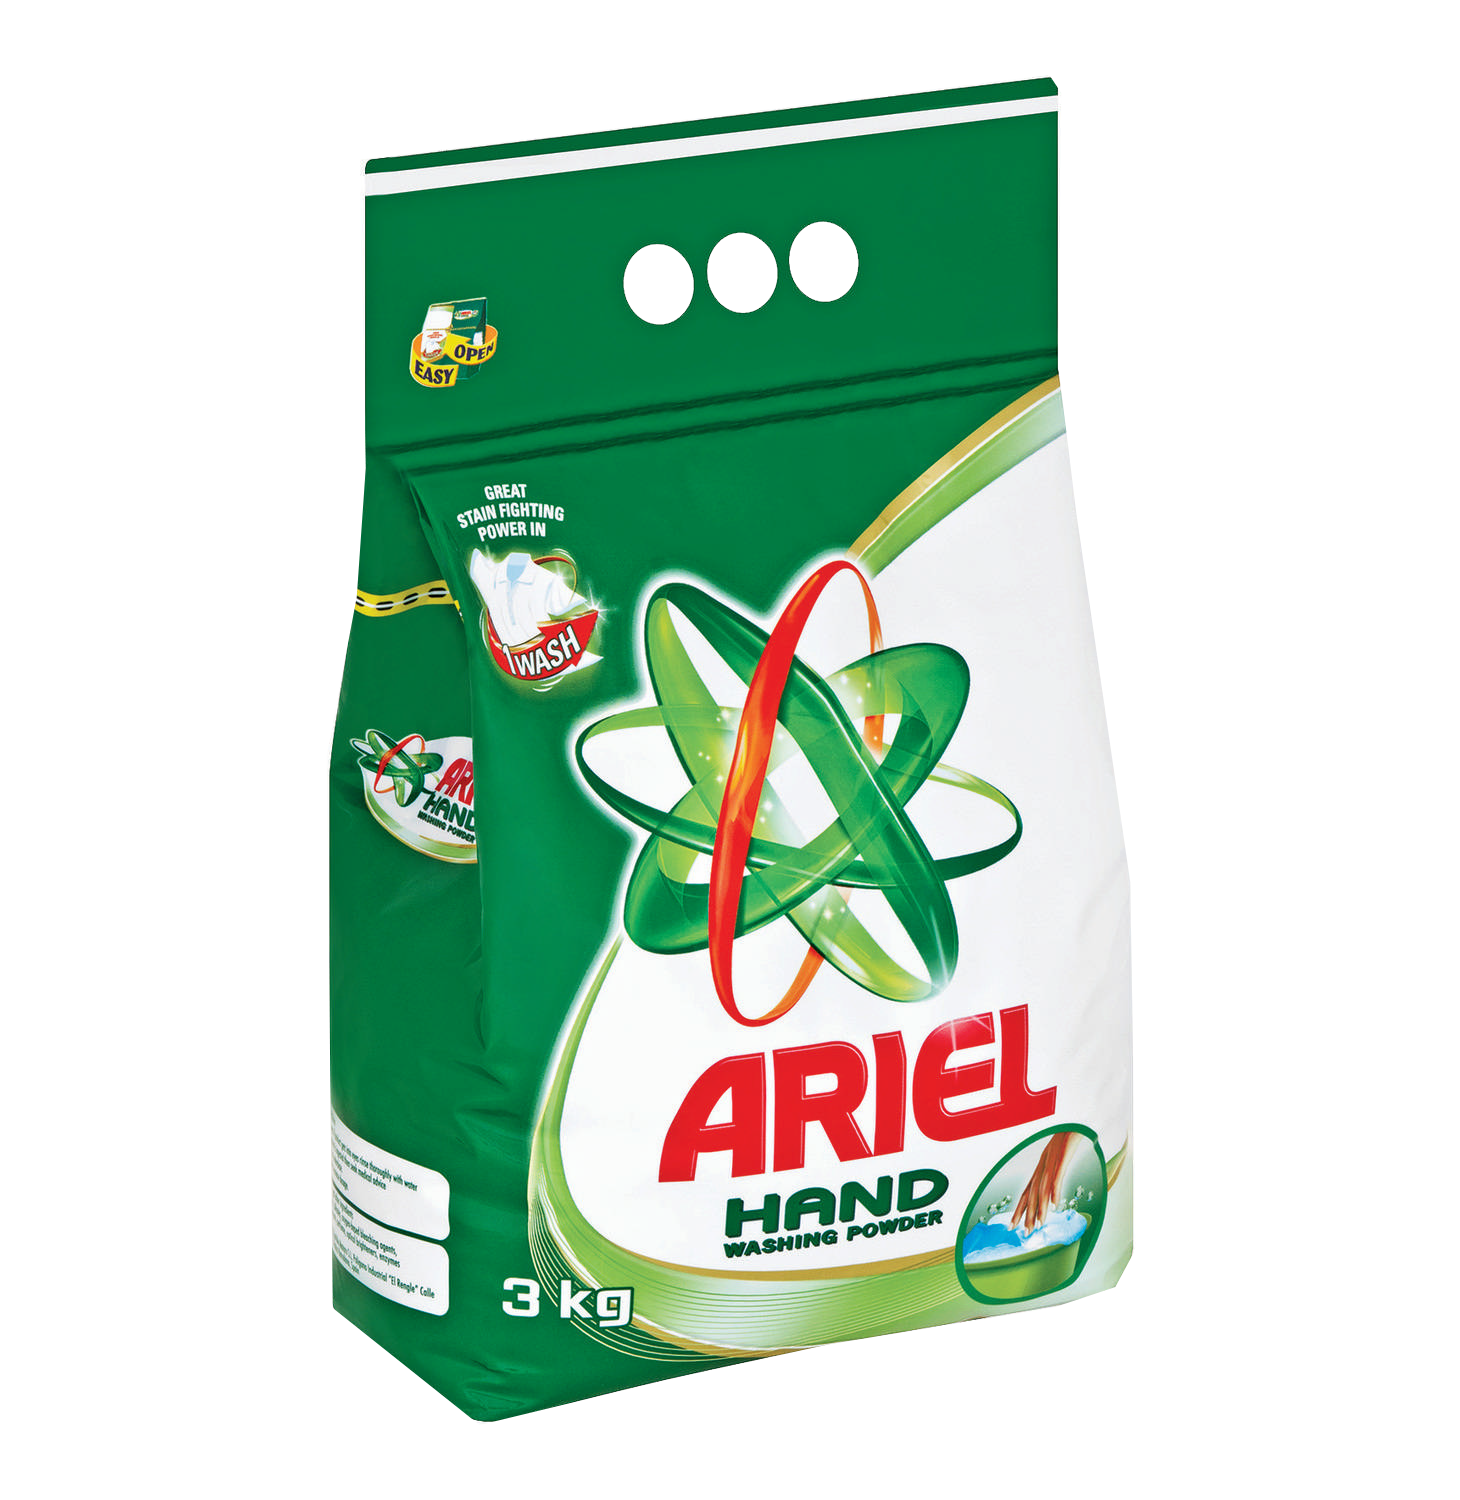 Now you can download Washing Powder PNG in High Resolution